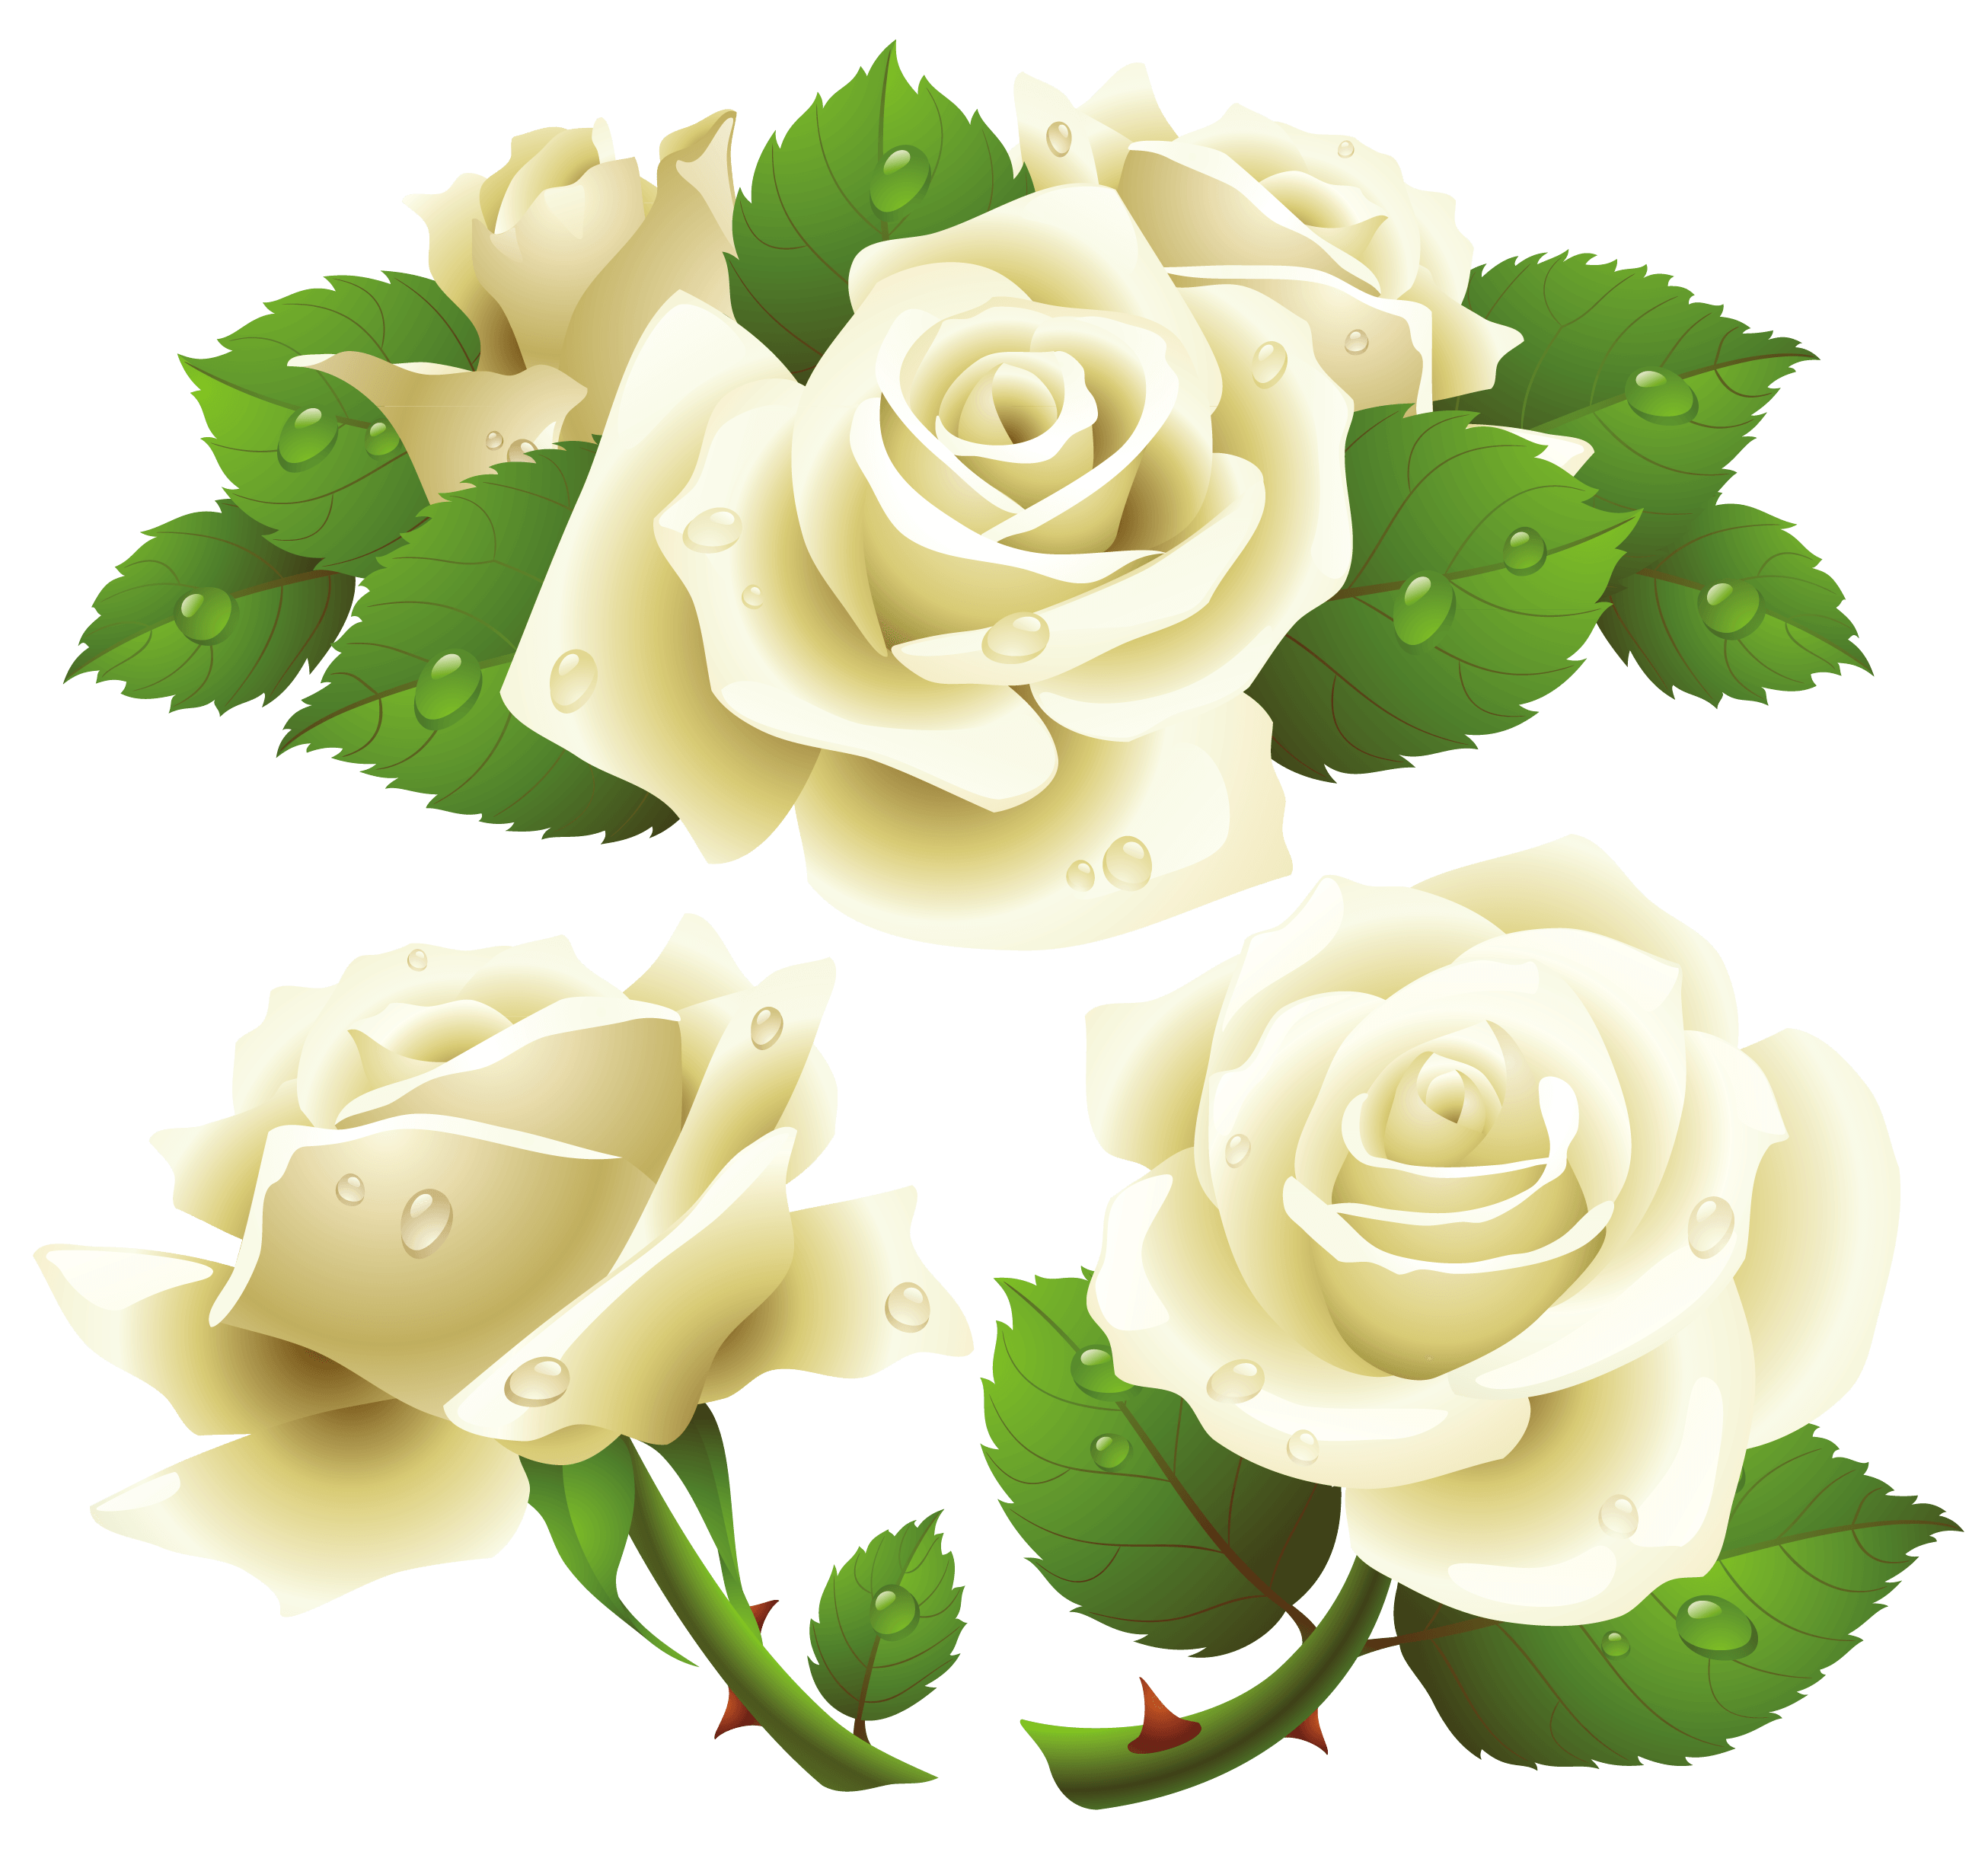 White Rose clipart rose garden  Picture Image White Download